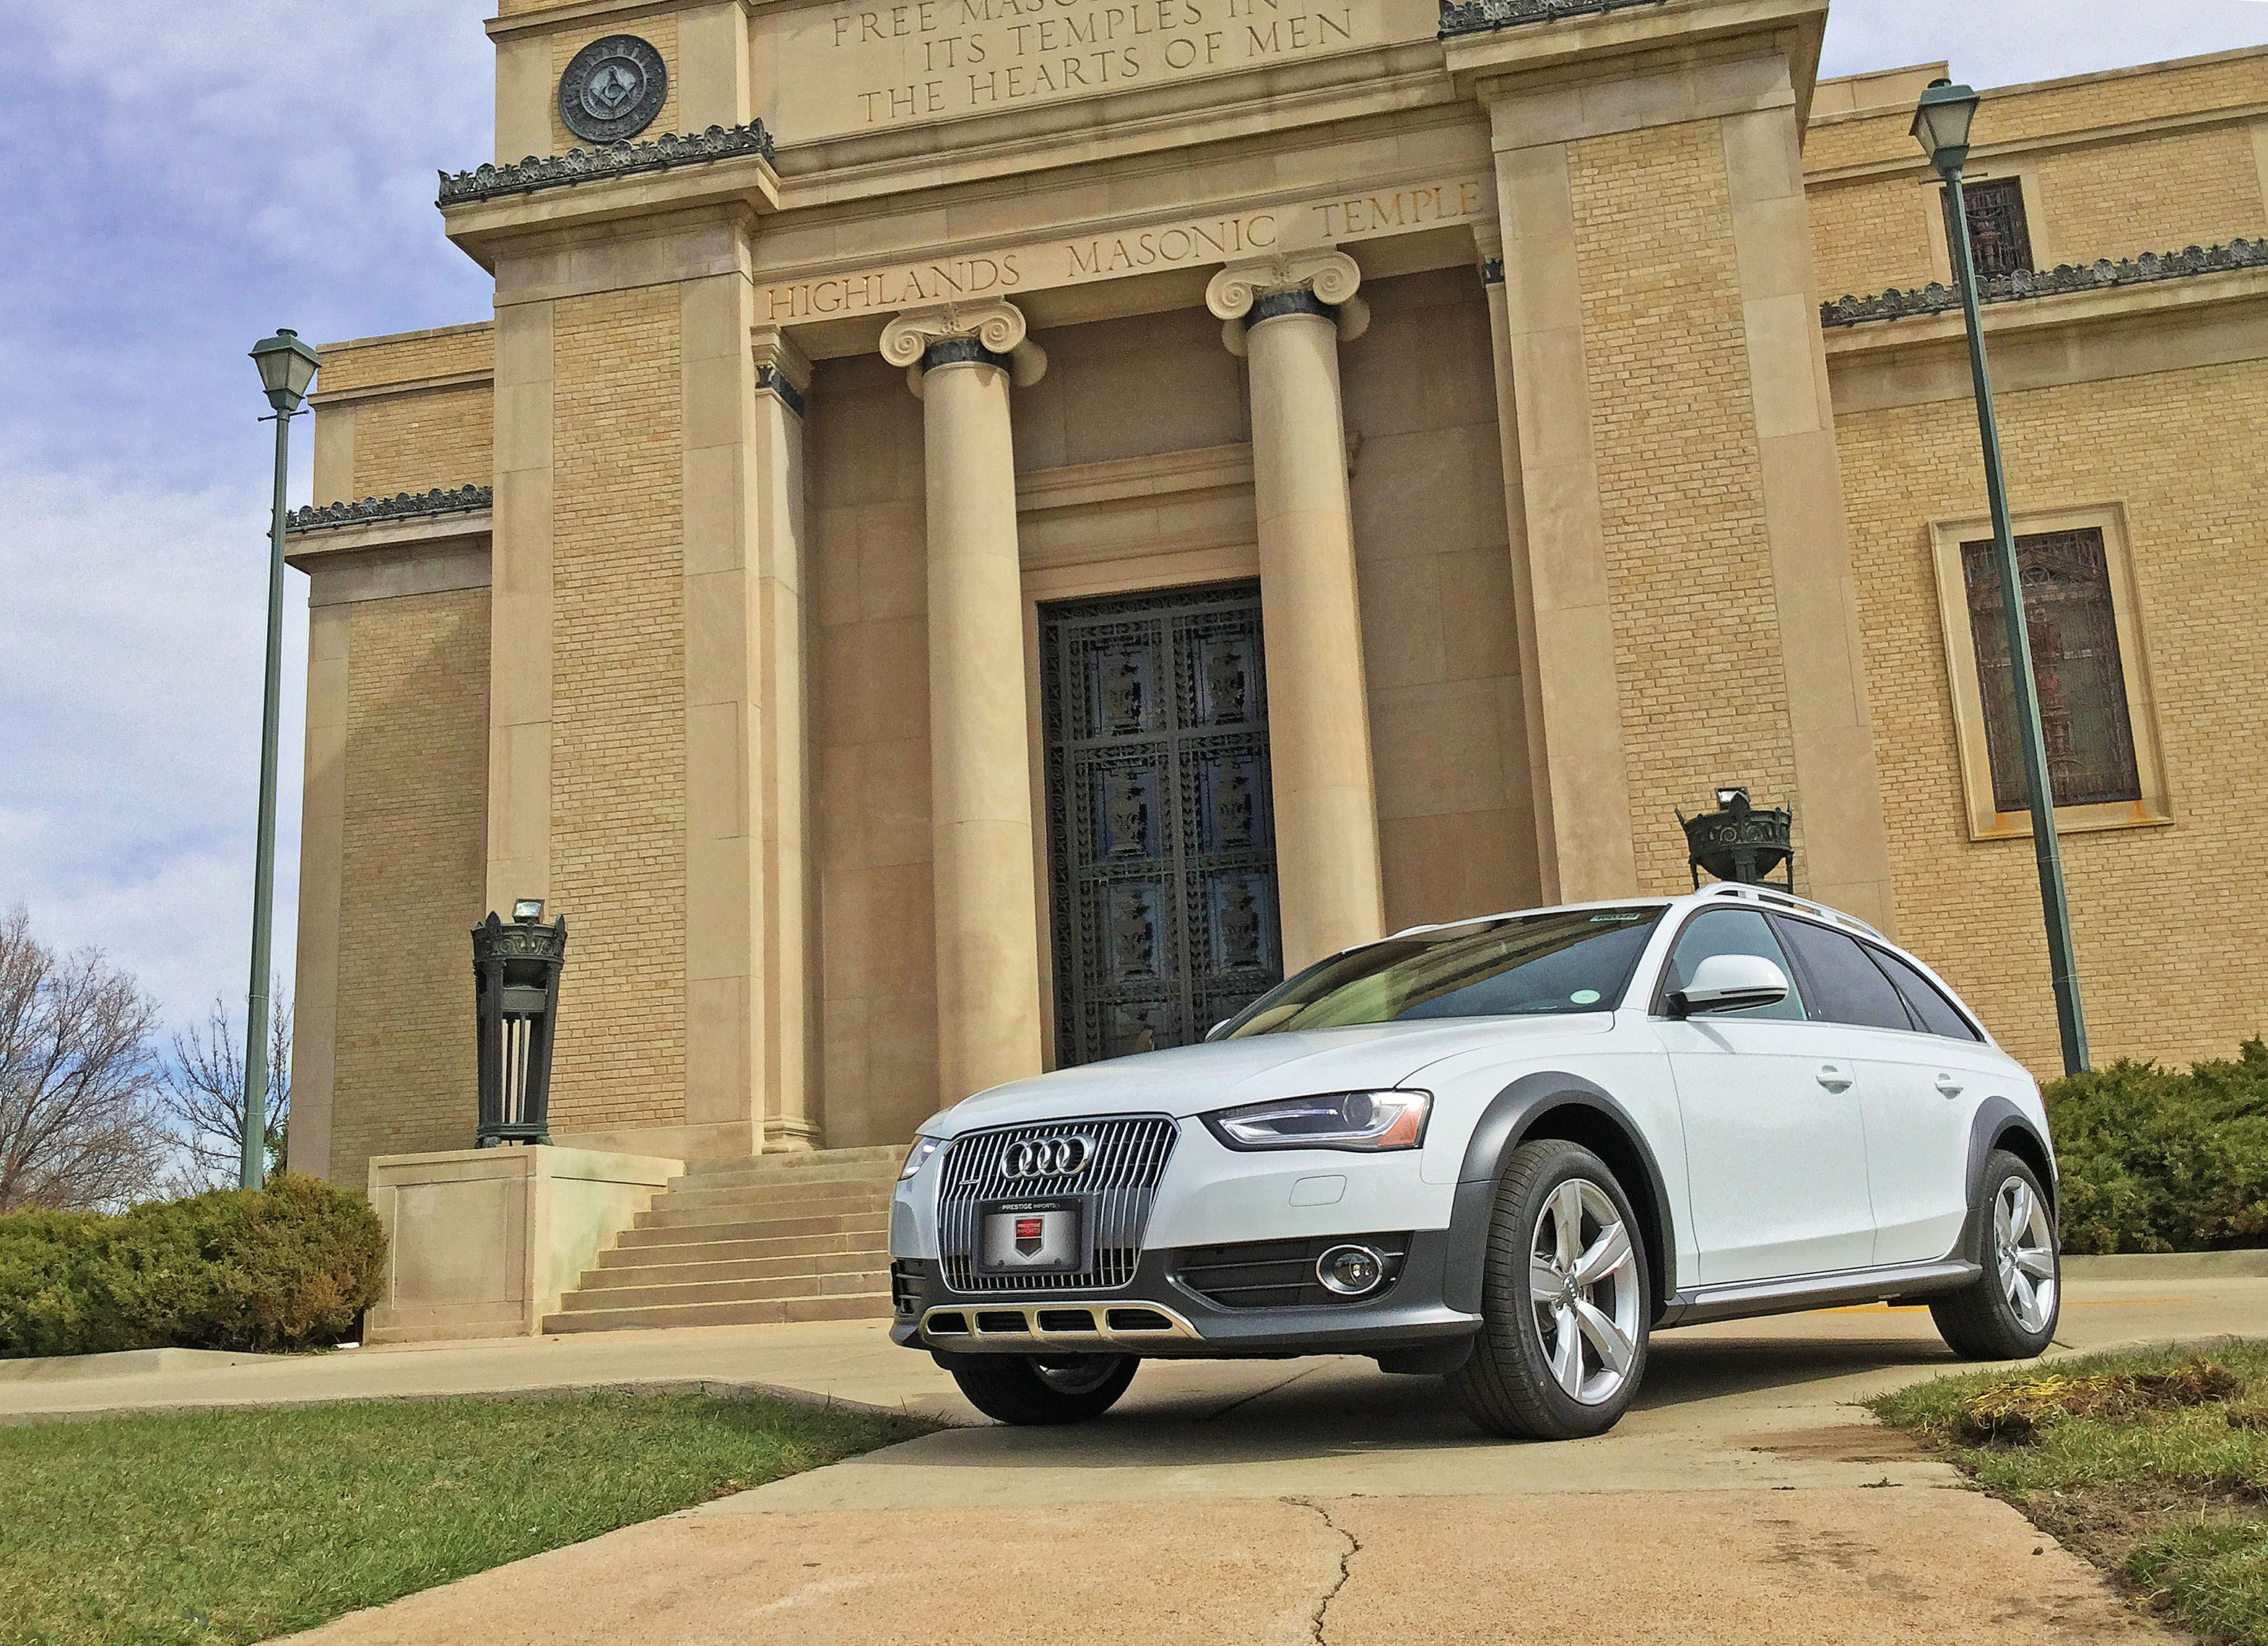 An Audi allroad parked in front of the Highlands Masonic Temple in Denver, CO